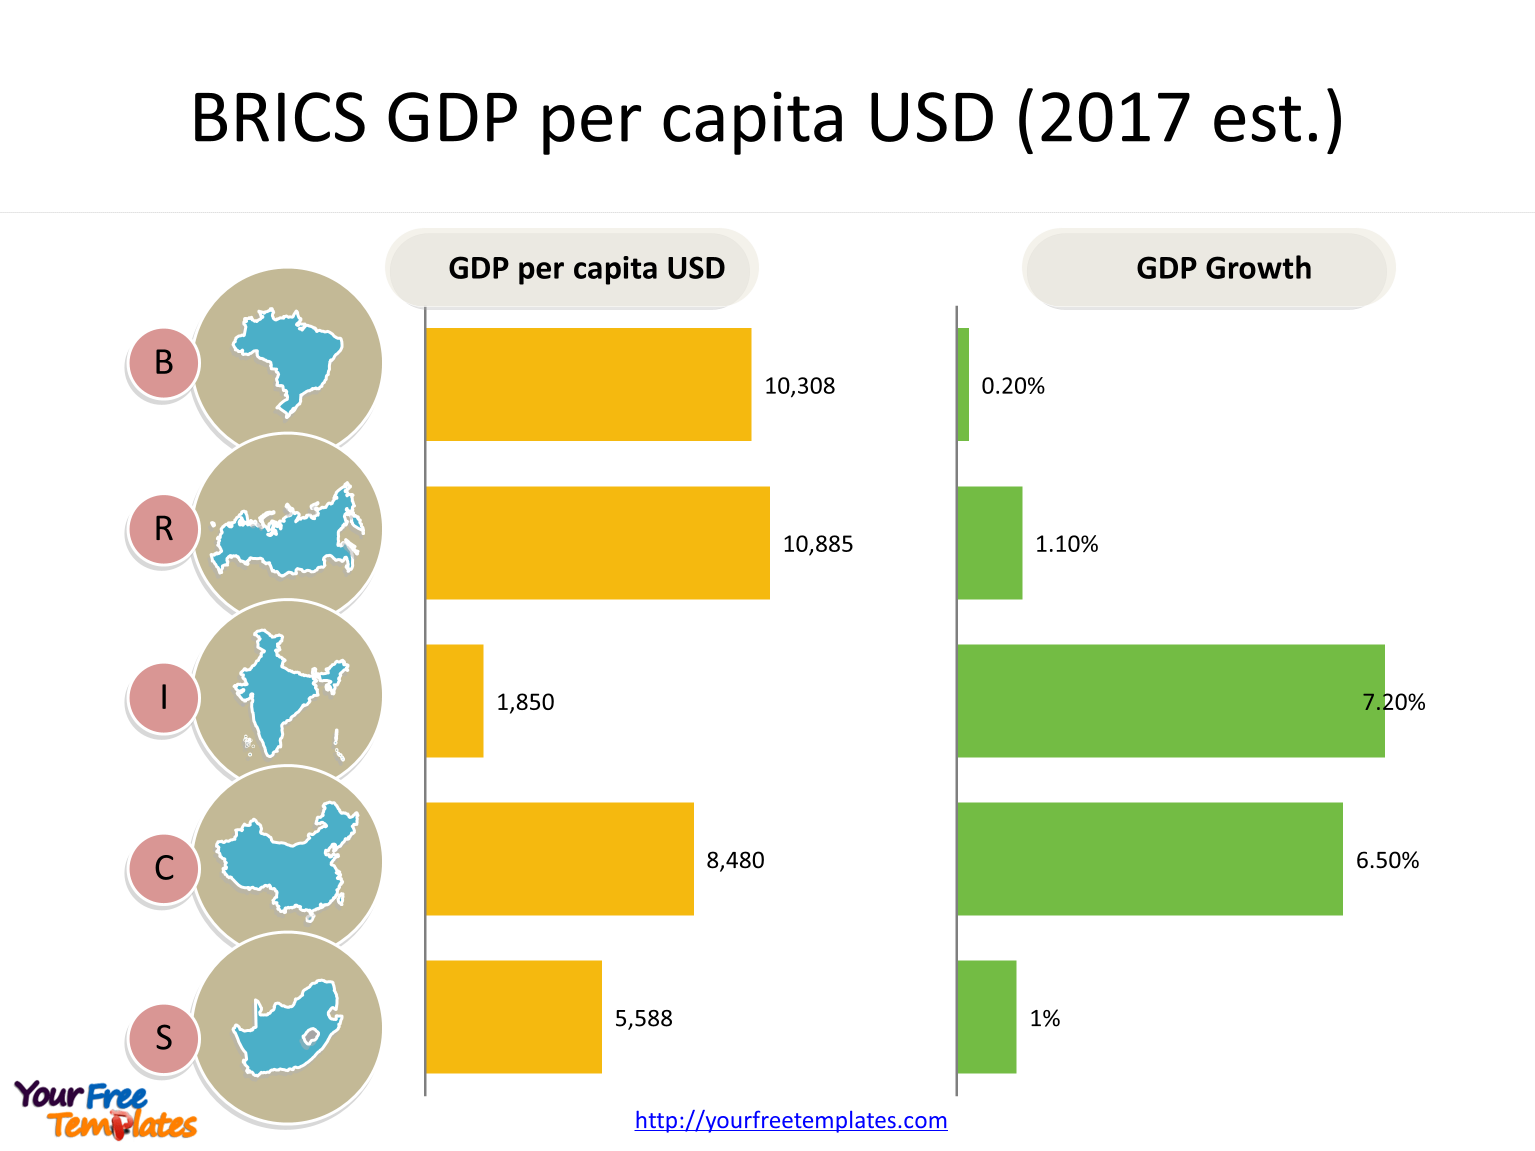 Create maps for BRICS with bar charts along with country outline maps